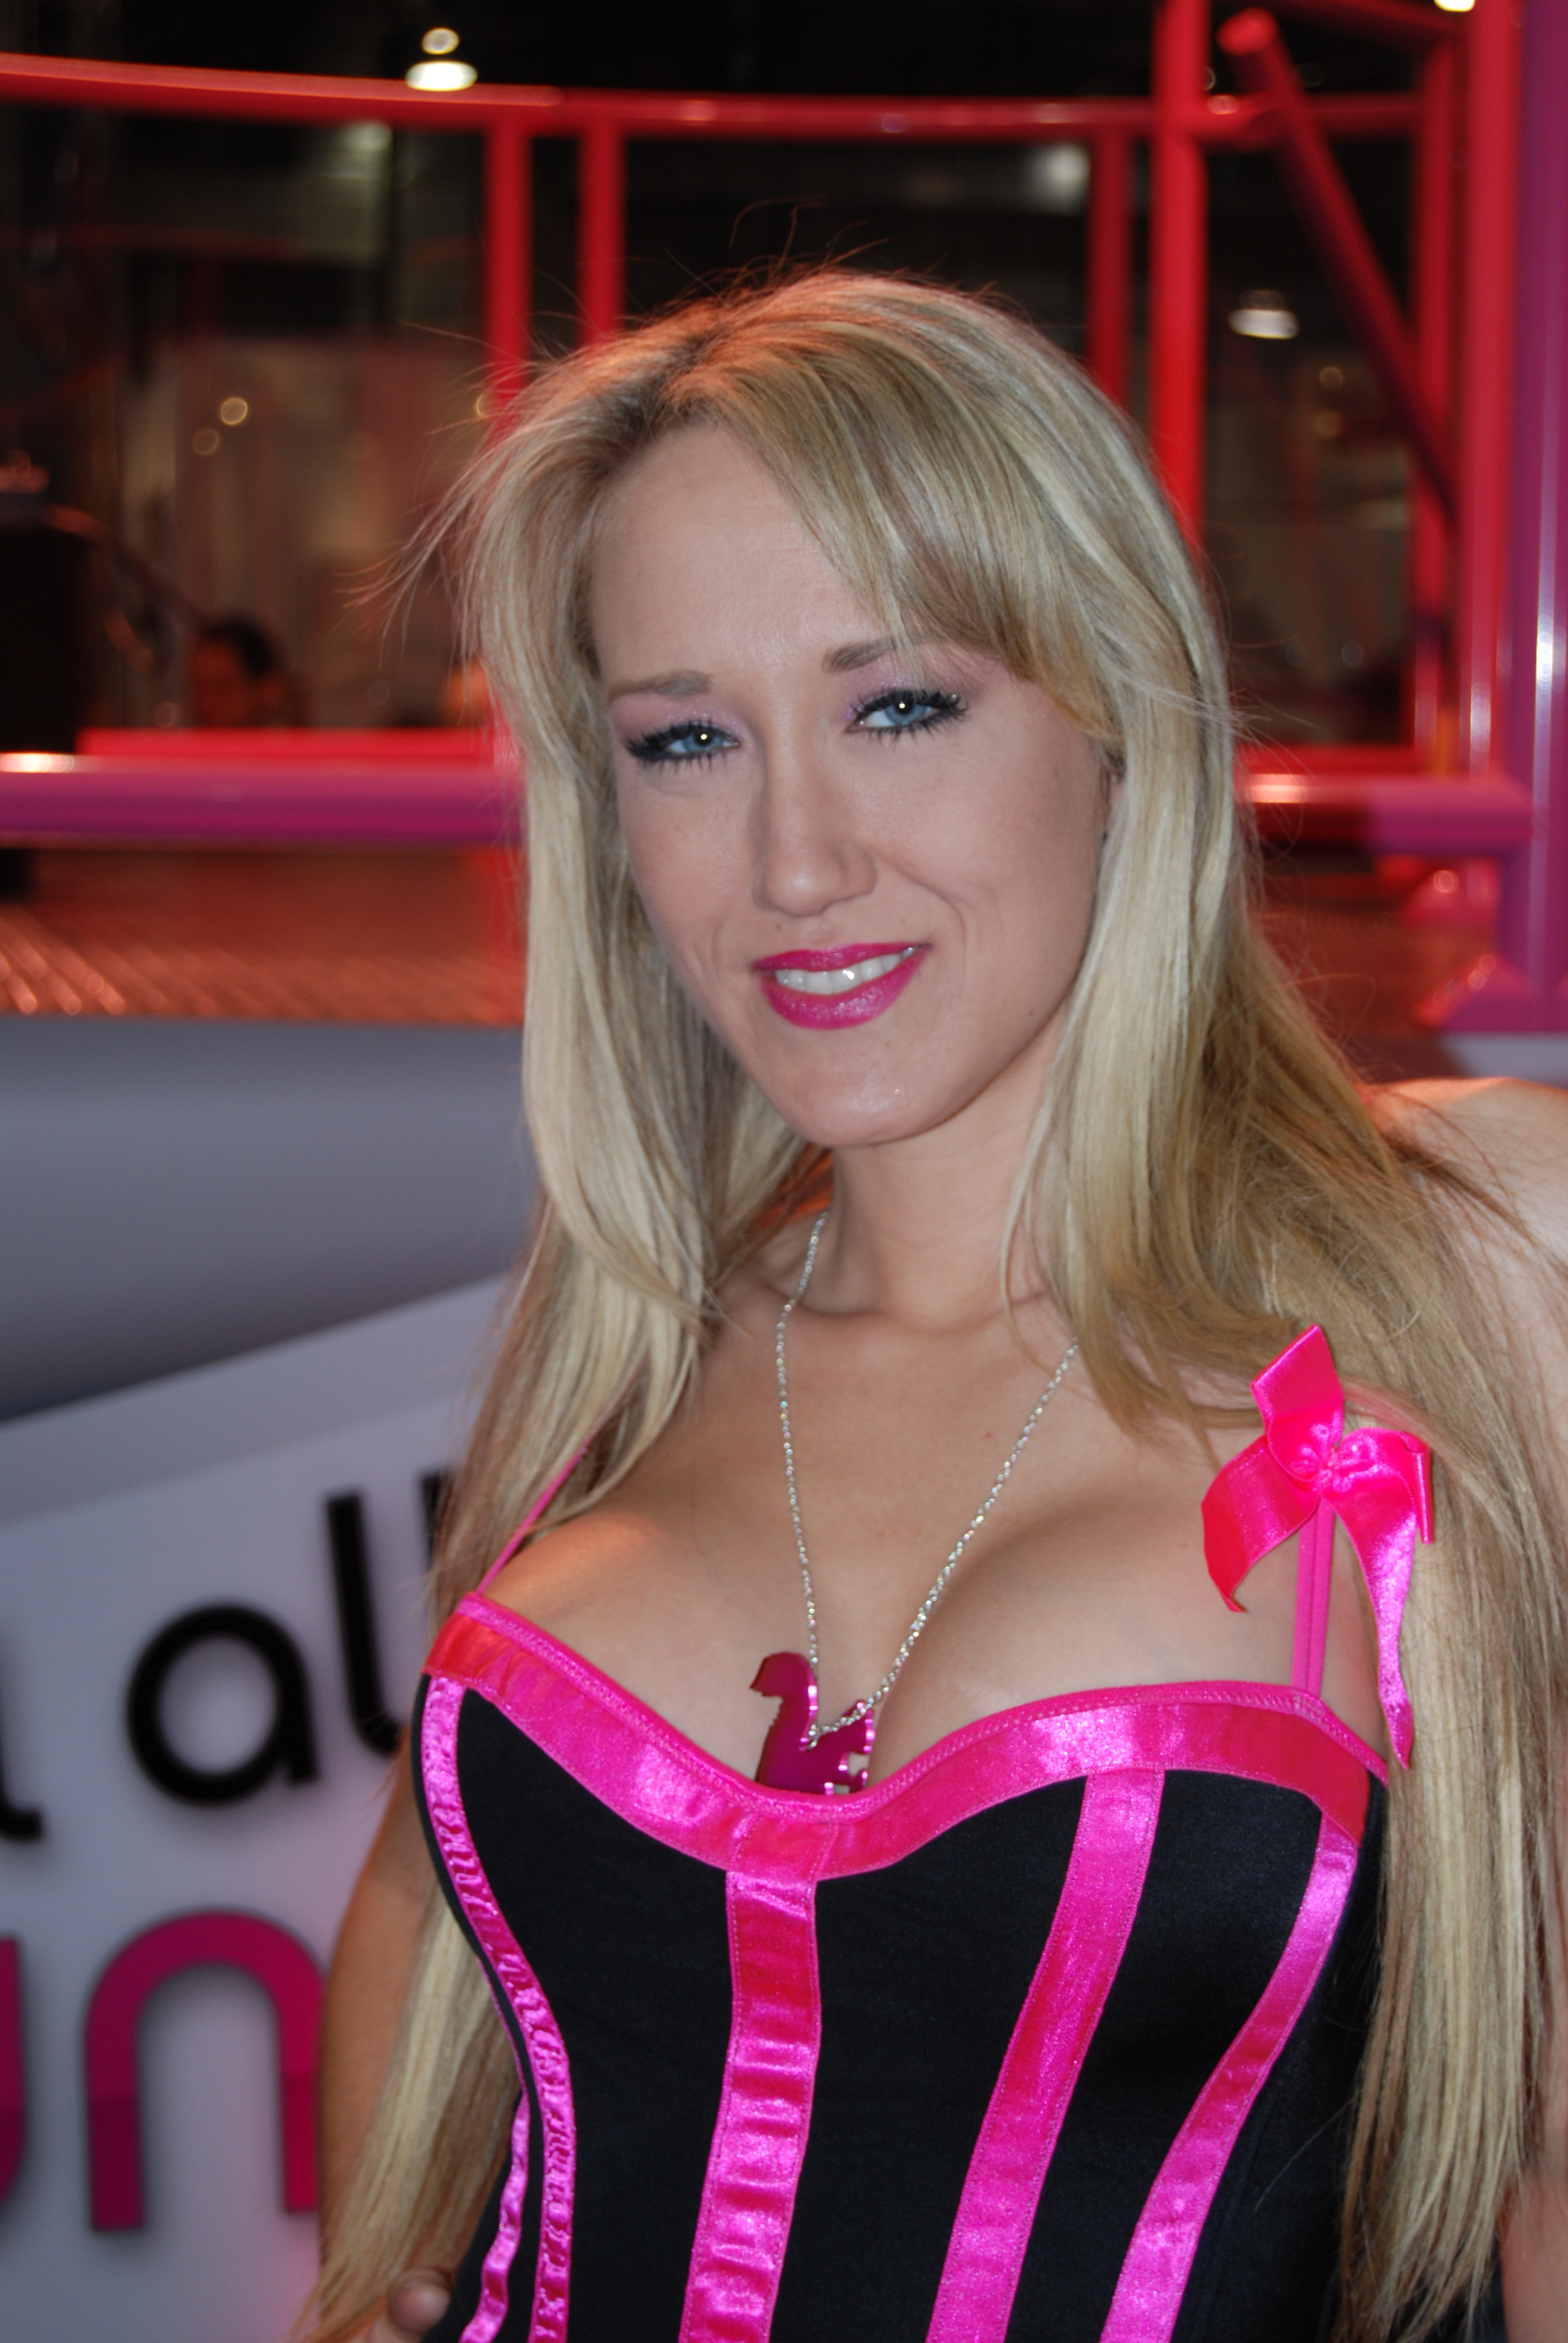 Datei:Alana Evans at AVN Adult Entertainment Expo 2008 1.jpg